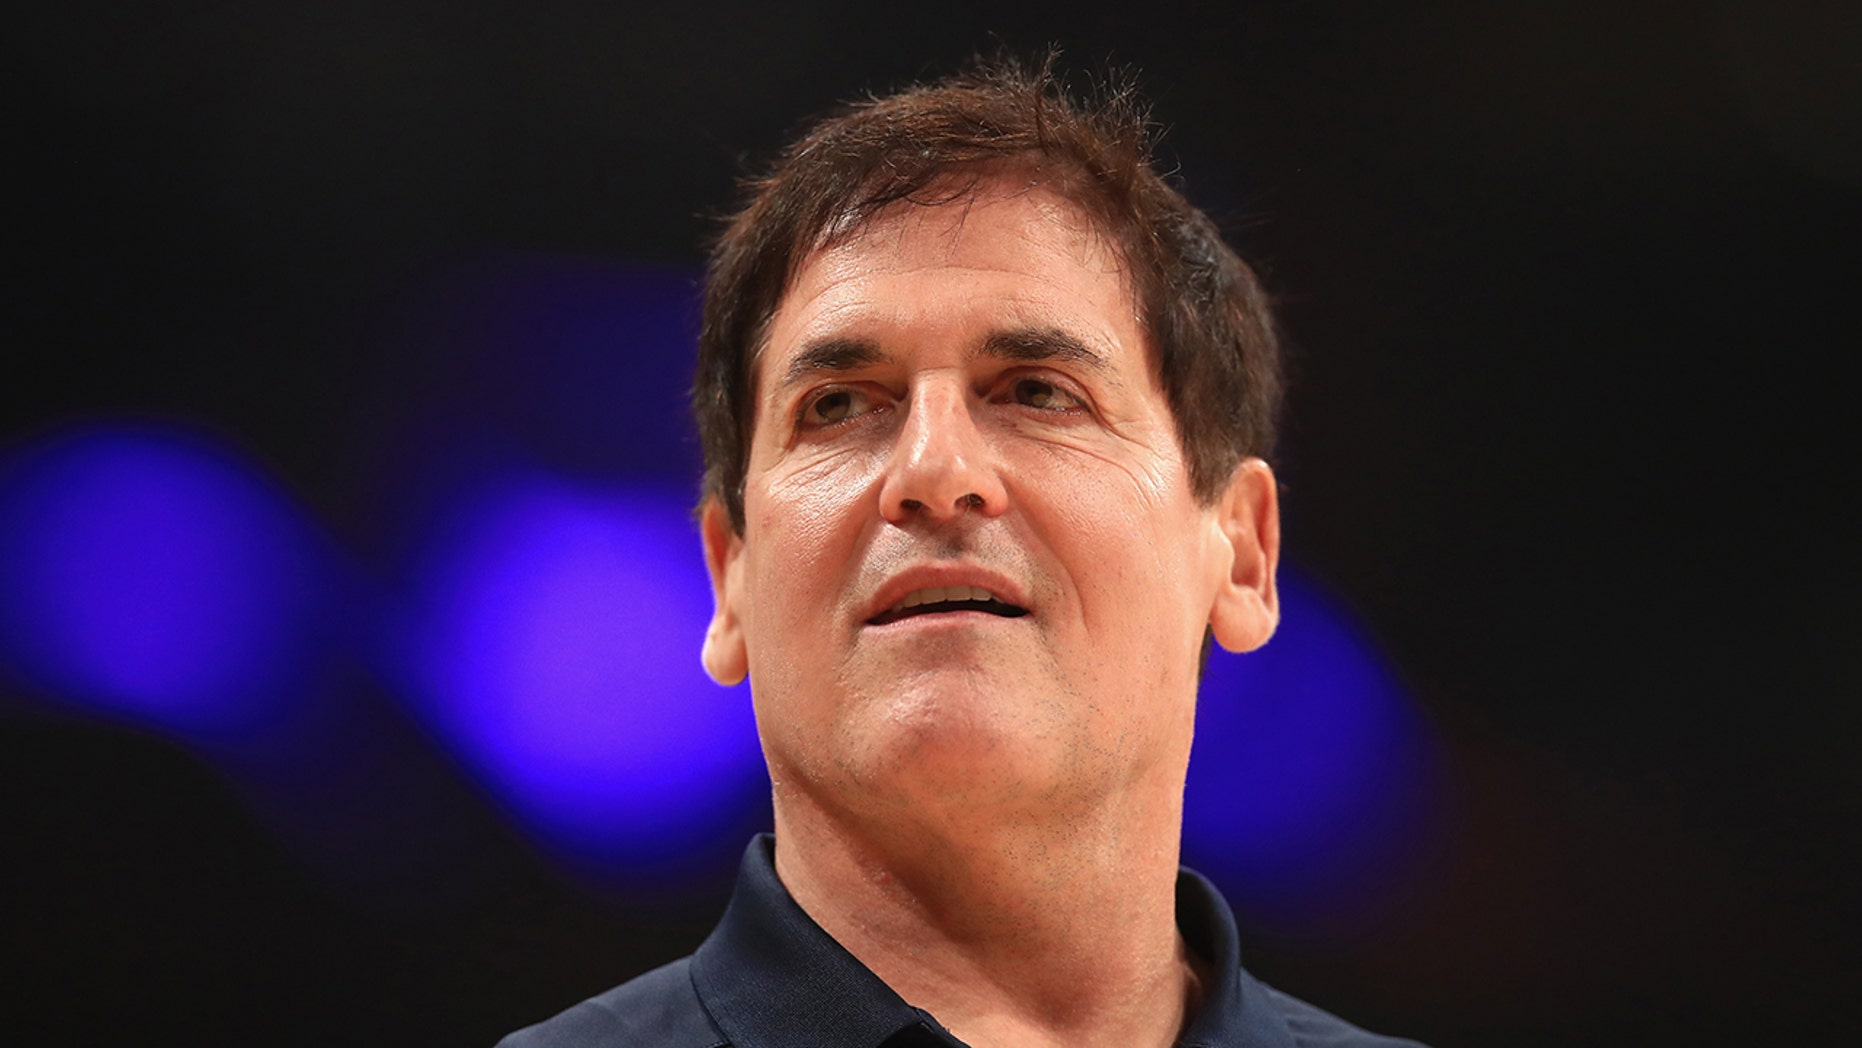 Owner Mark Cuban of the Dallas Mavericks looks at the first half of a game against the Los Angeles Lakers at the Staples Center in Los Angeles in October. (Photo by Sean M. Haffey / Getty Images)